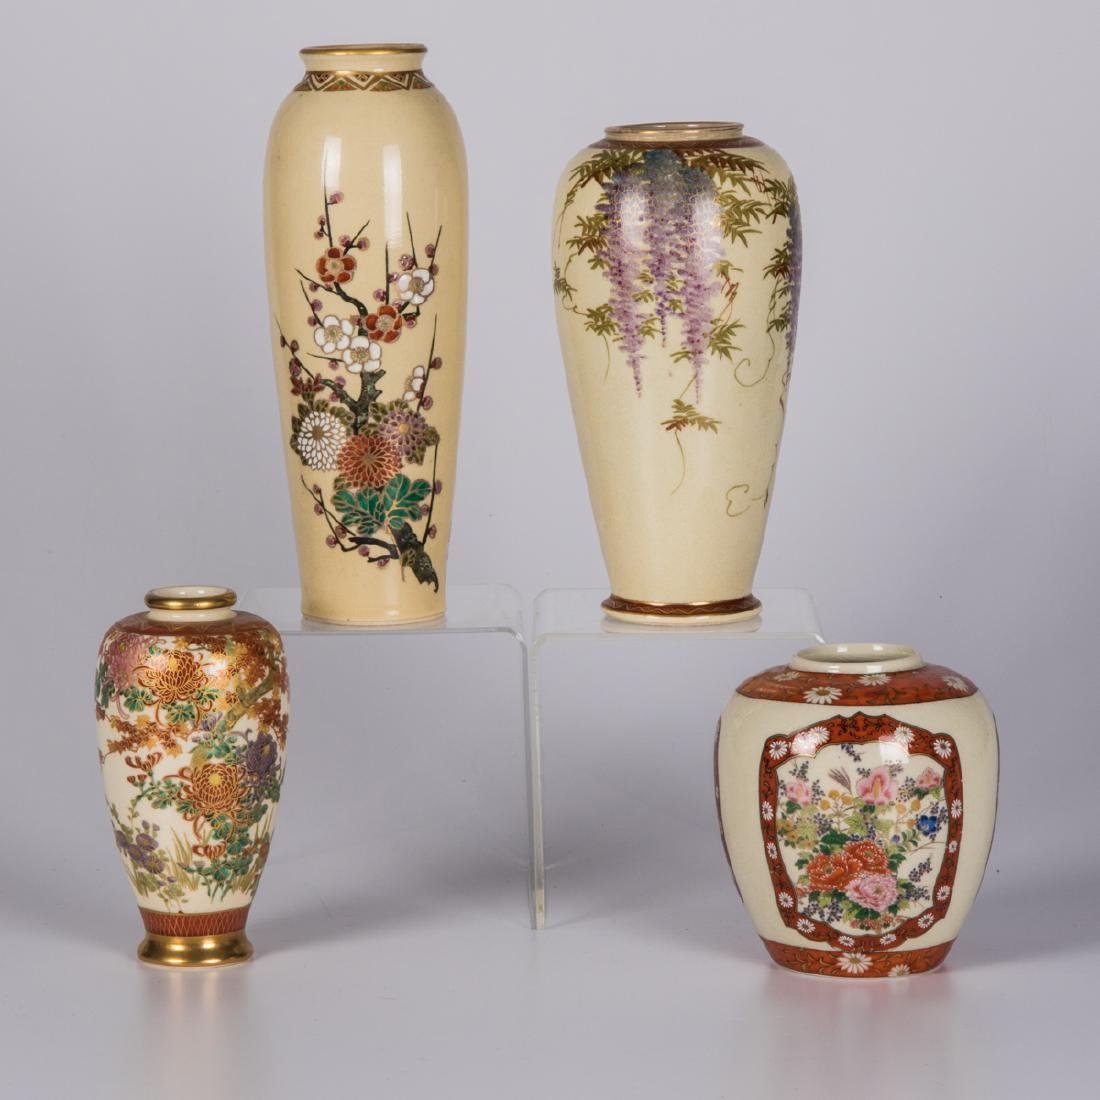 A Group of Four Japanese Satsuma Ceramic Vases, 20th